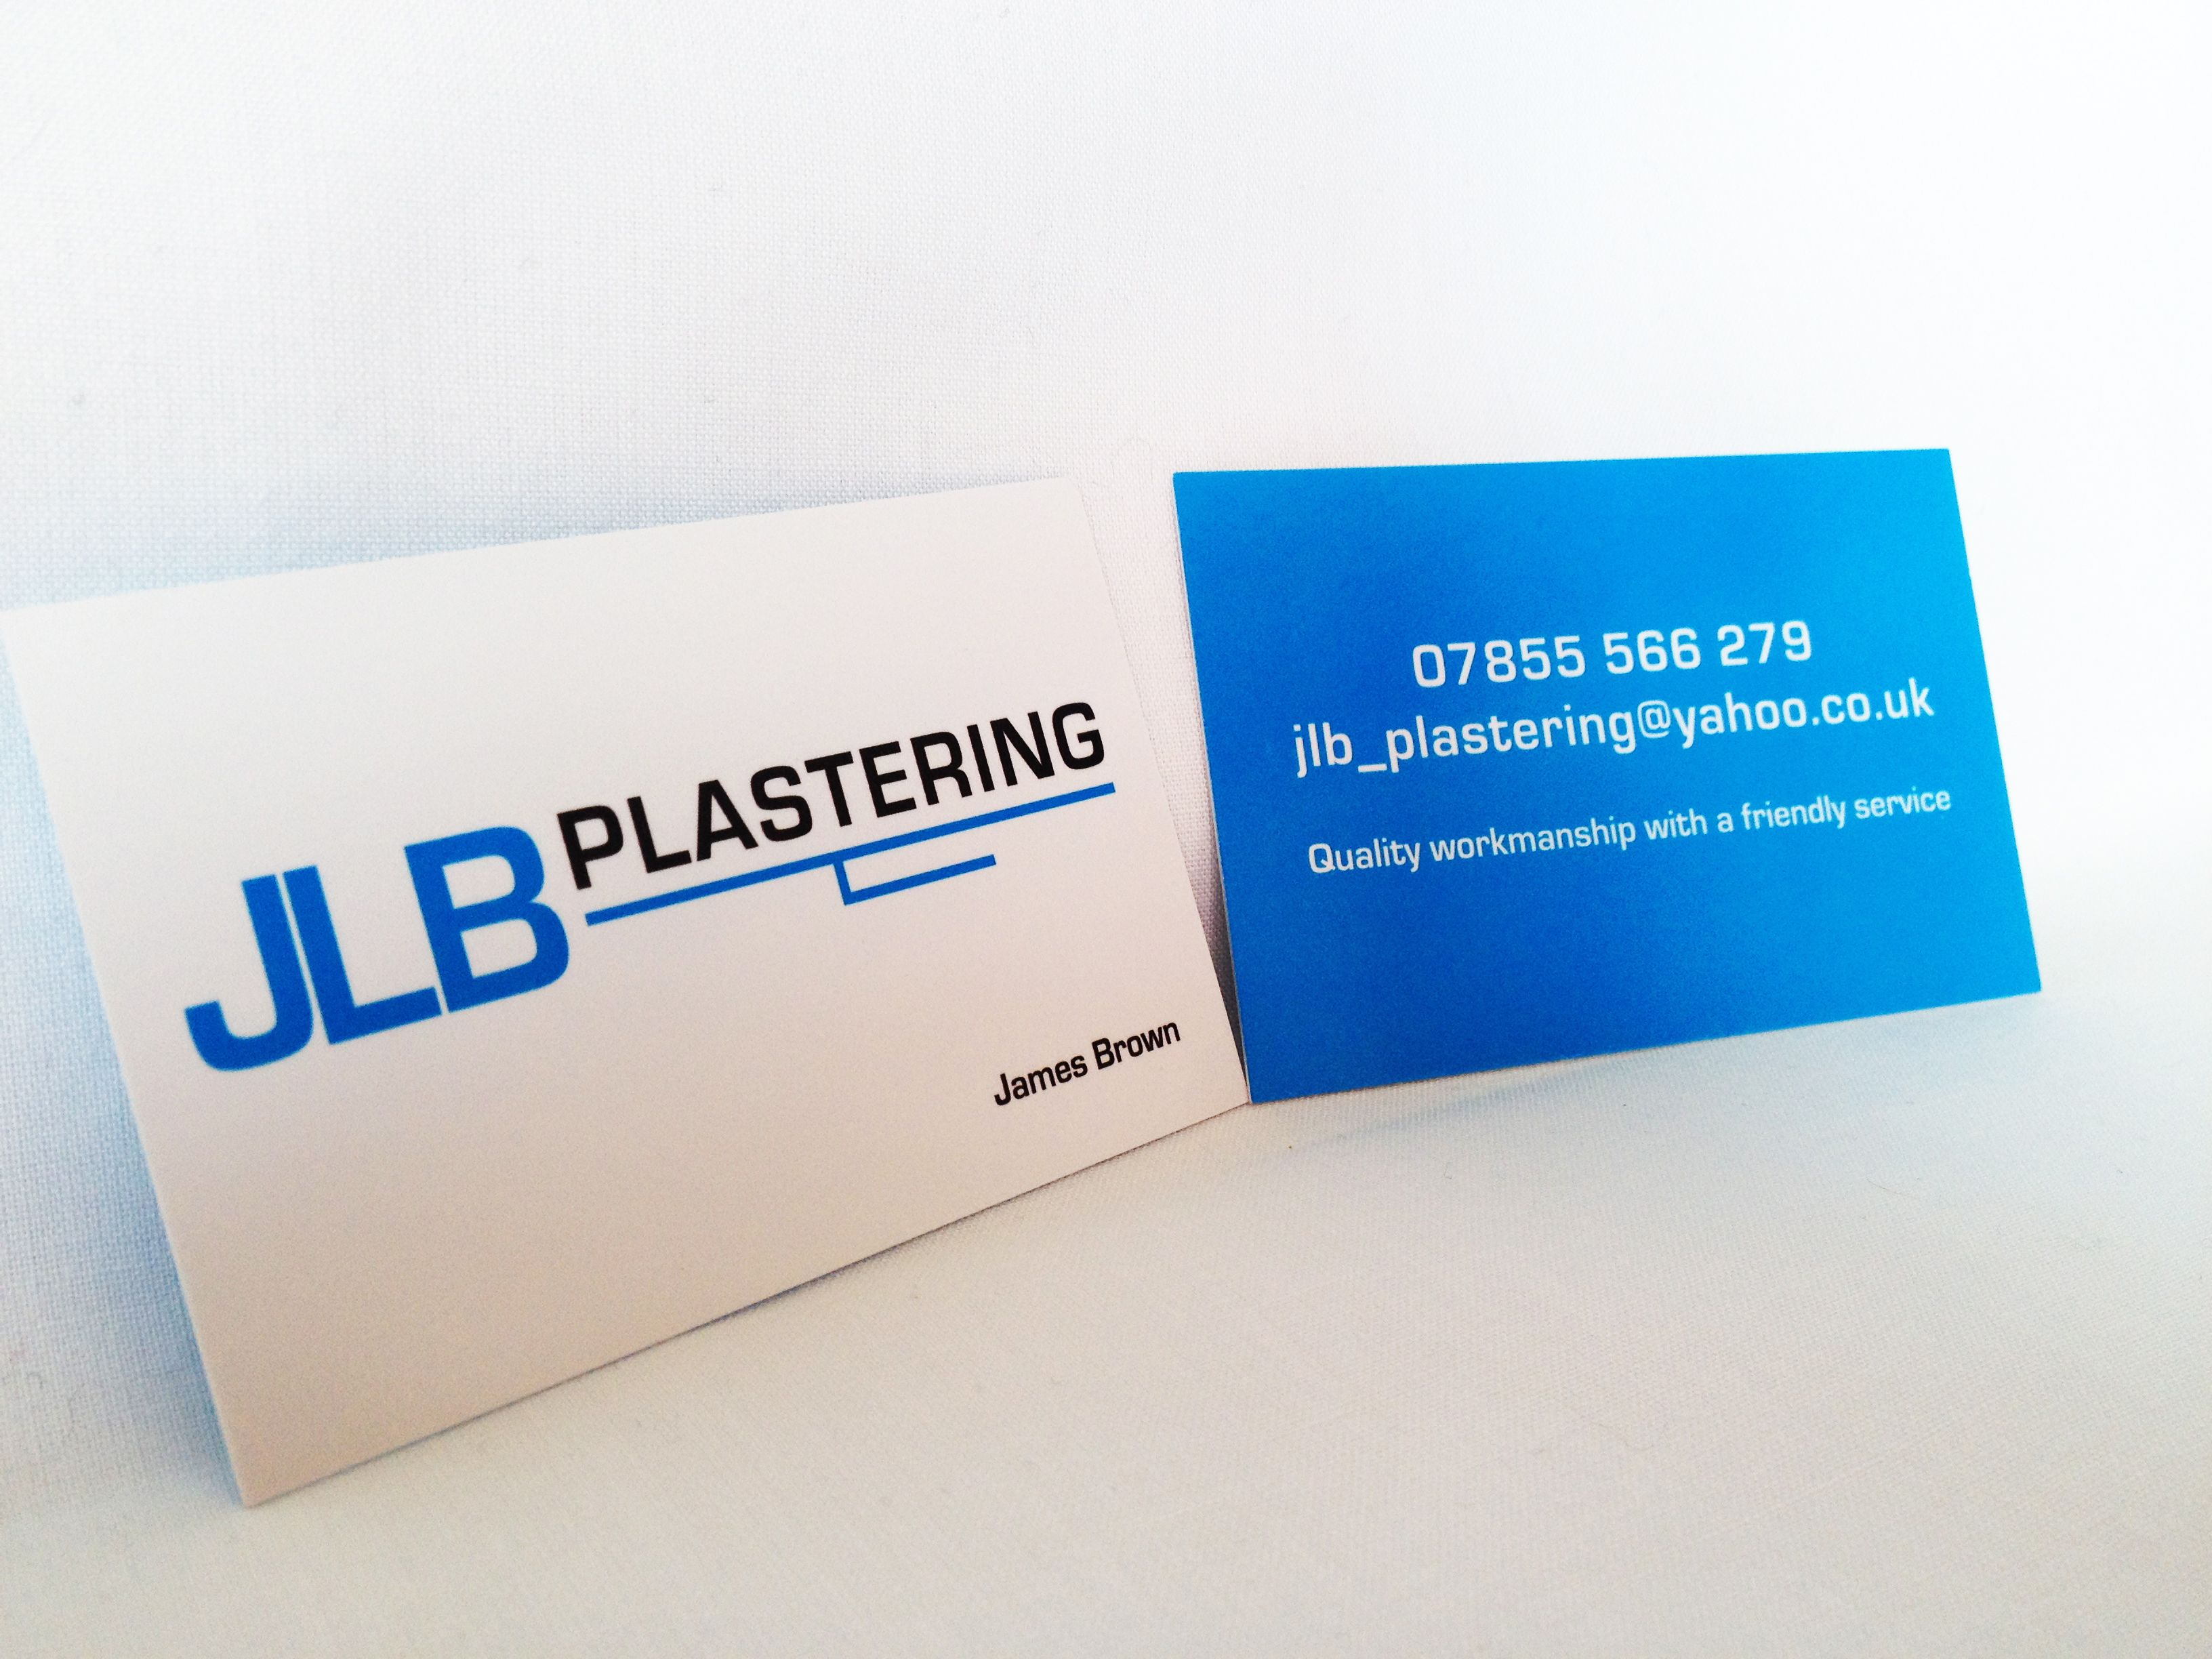 New JLB Plastering business cards and logo design | Logo ...